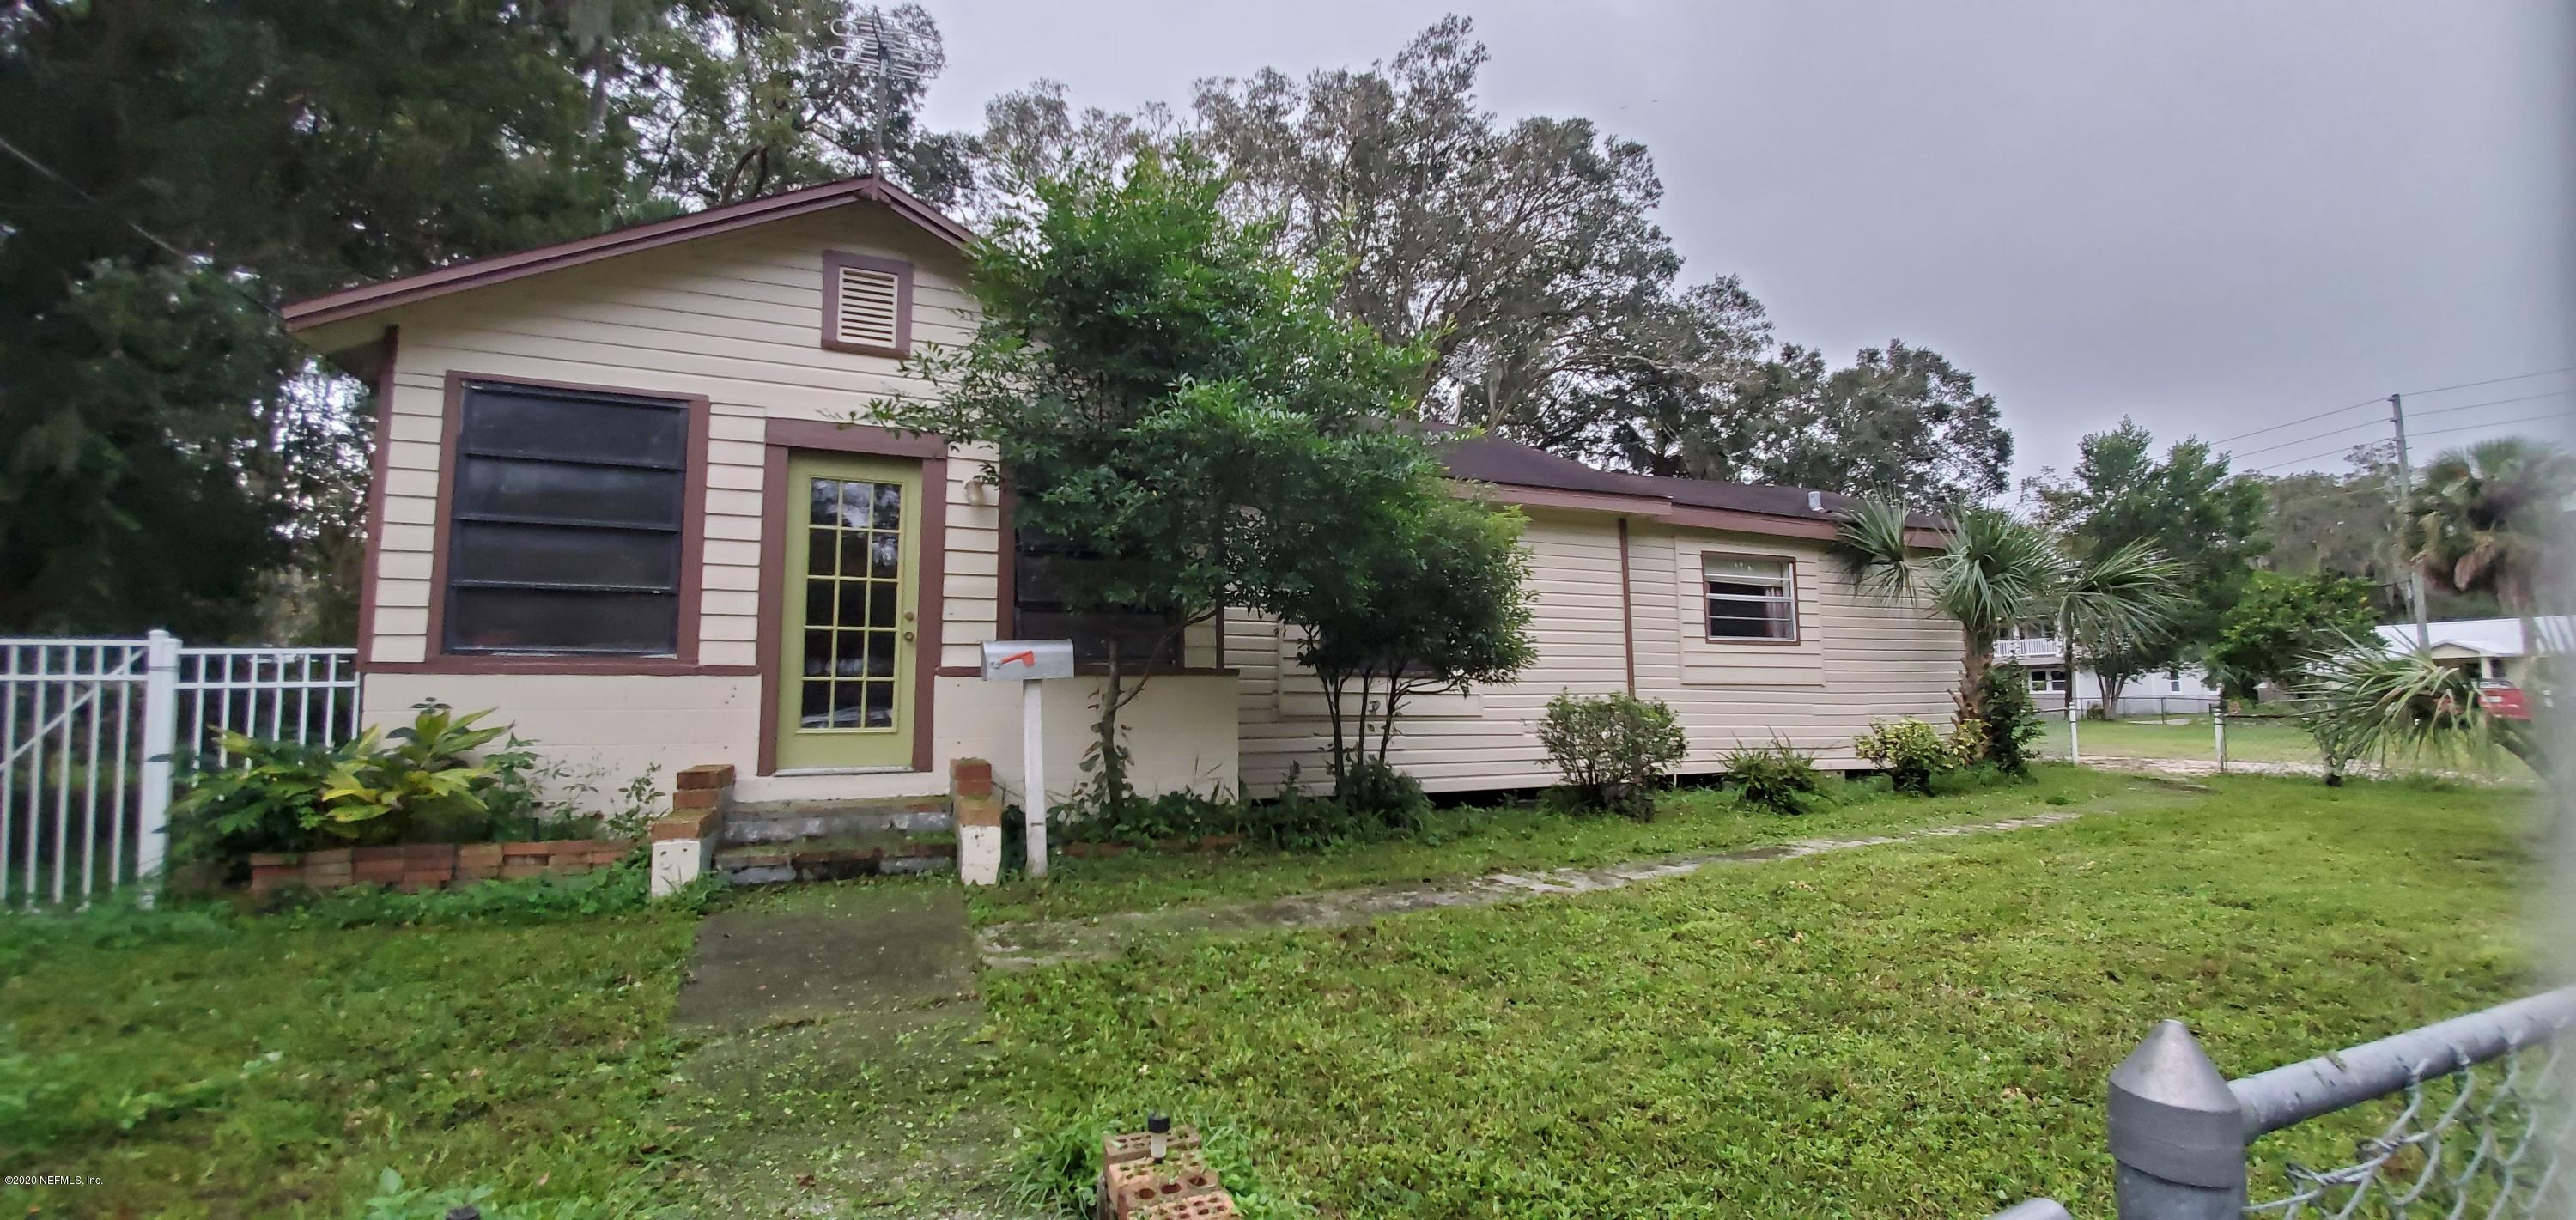 49 PHILLIPS, ST AUGUSTINE, FLORIDA 32084, 3 Bedrooms Bedrooms, ,2 BathroomsBathrooms,Residential,For sale,PHILLIPS,1083414